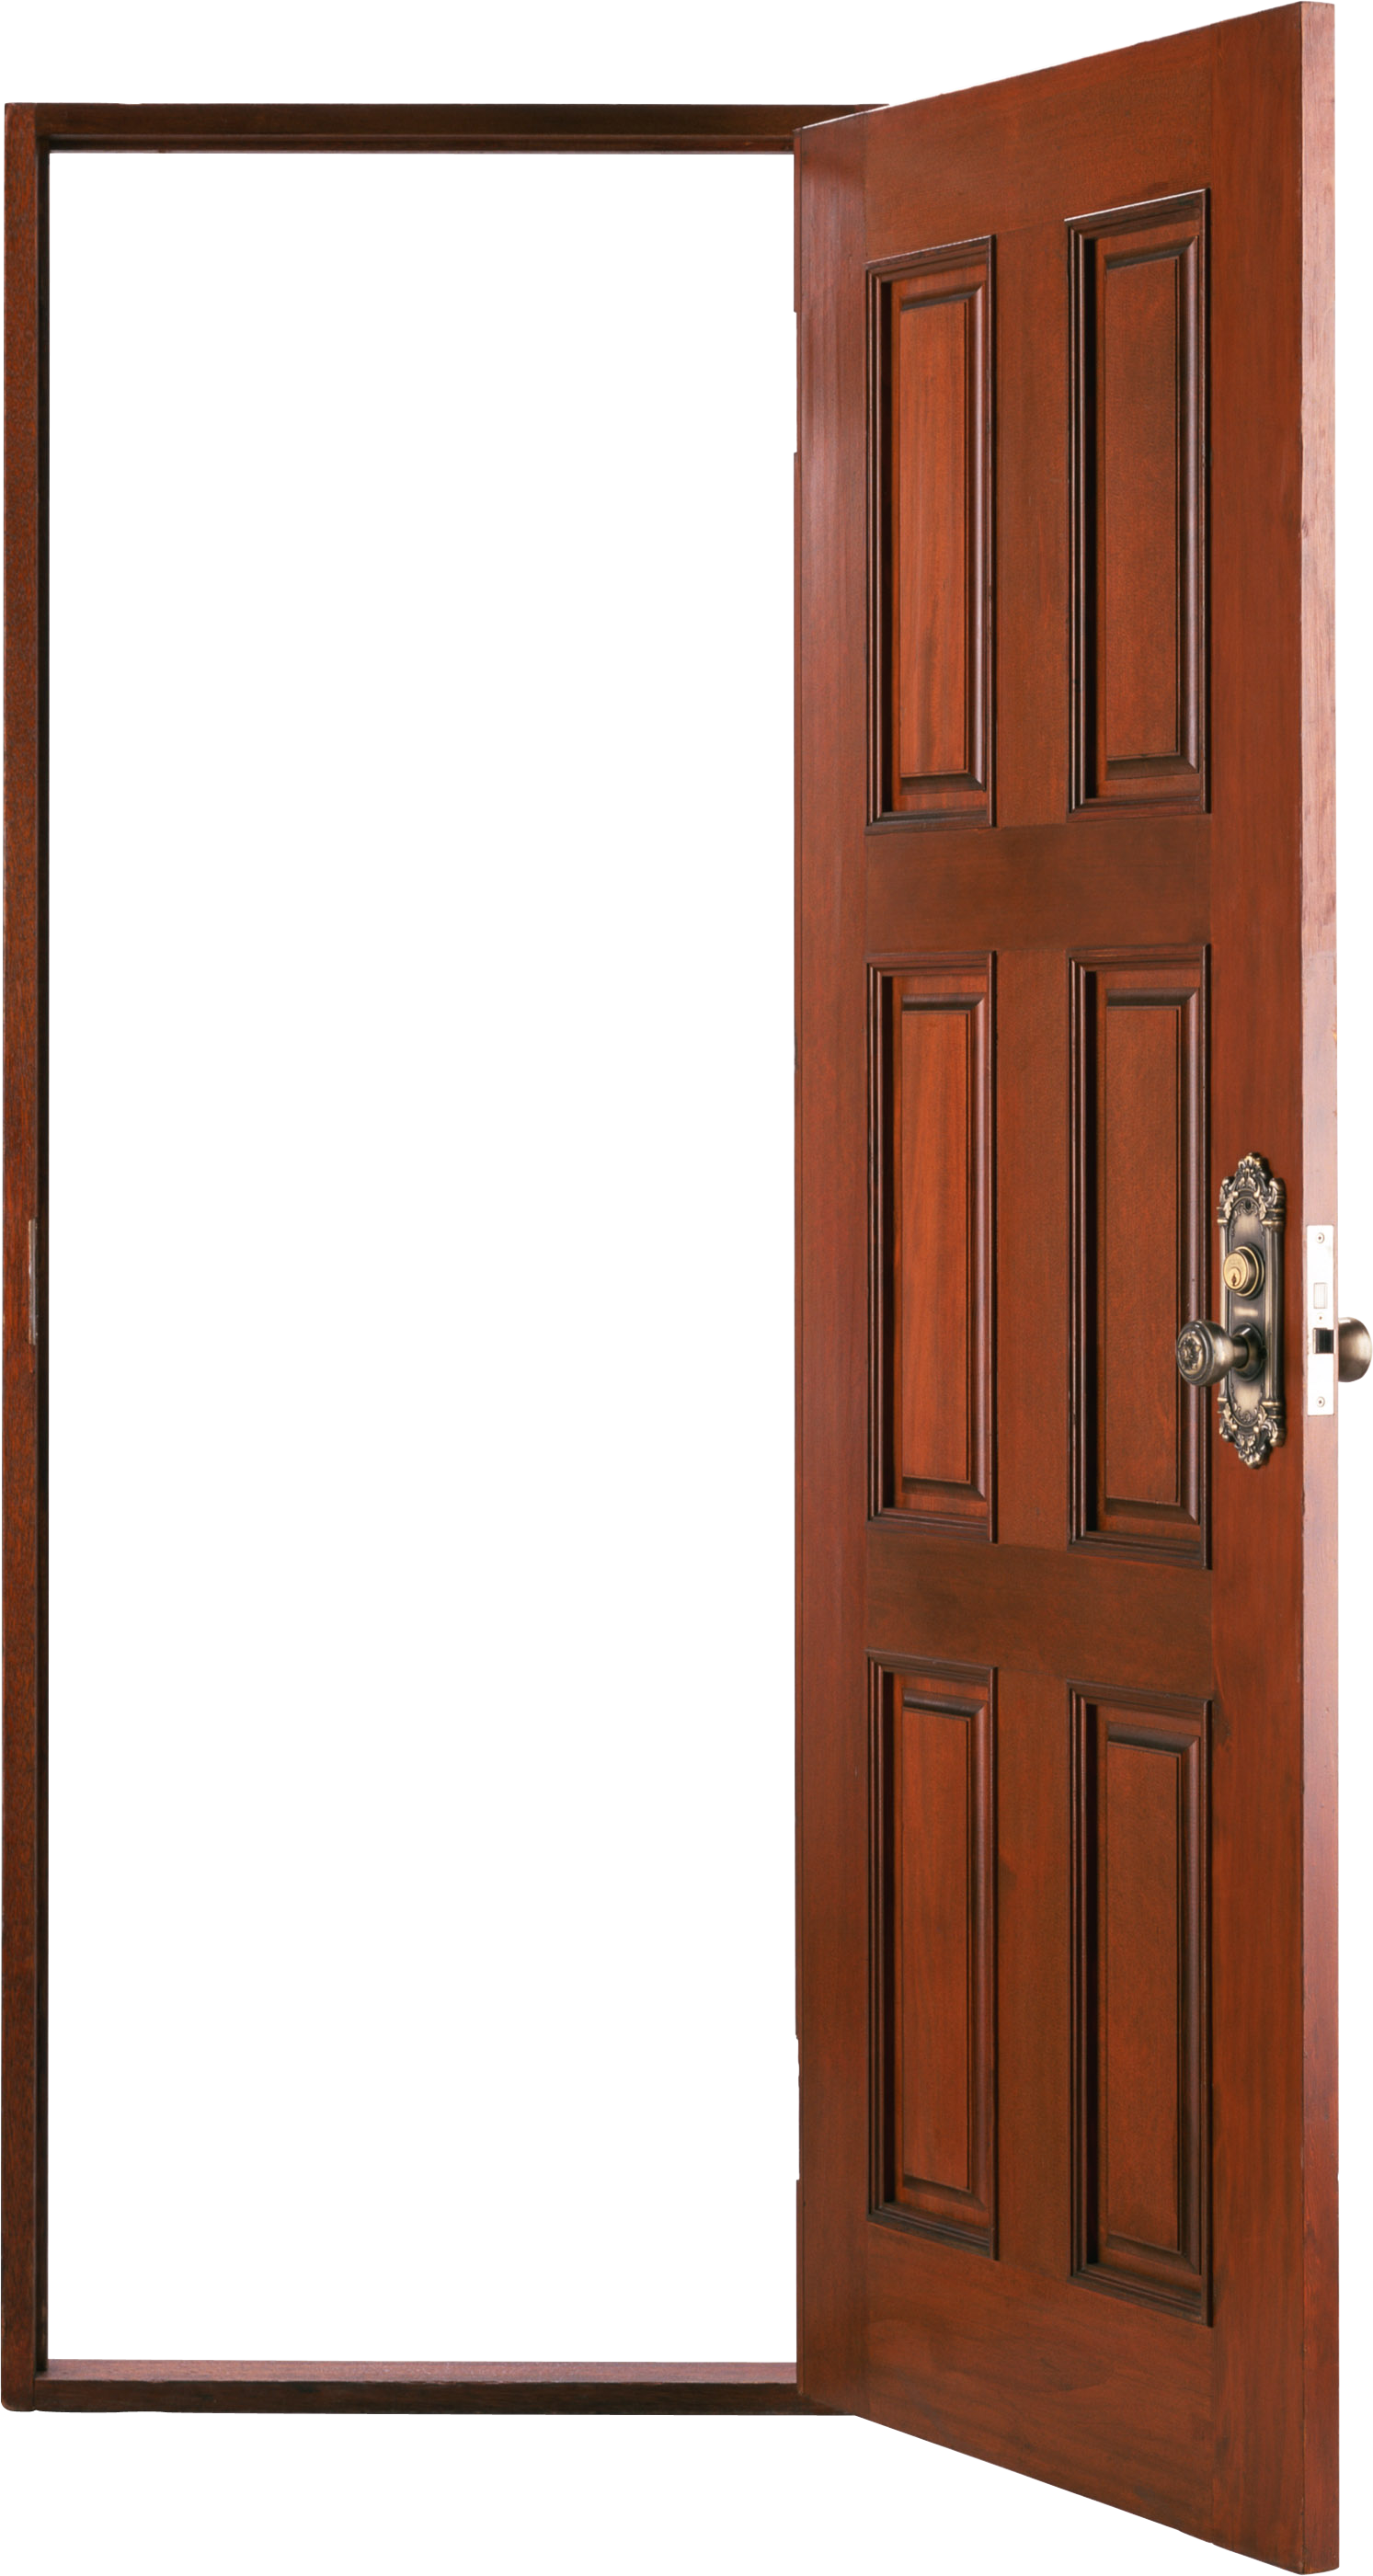 image freeuse library Wood free on dumielauxepices. Door clipart.